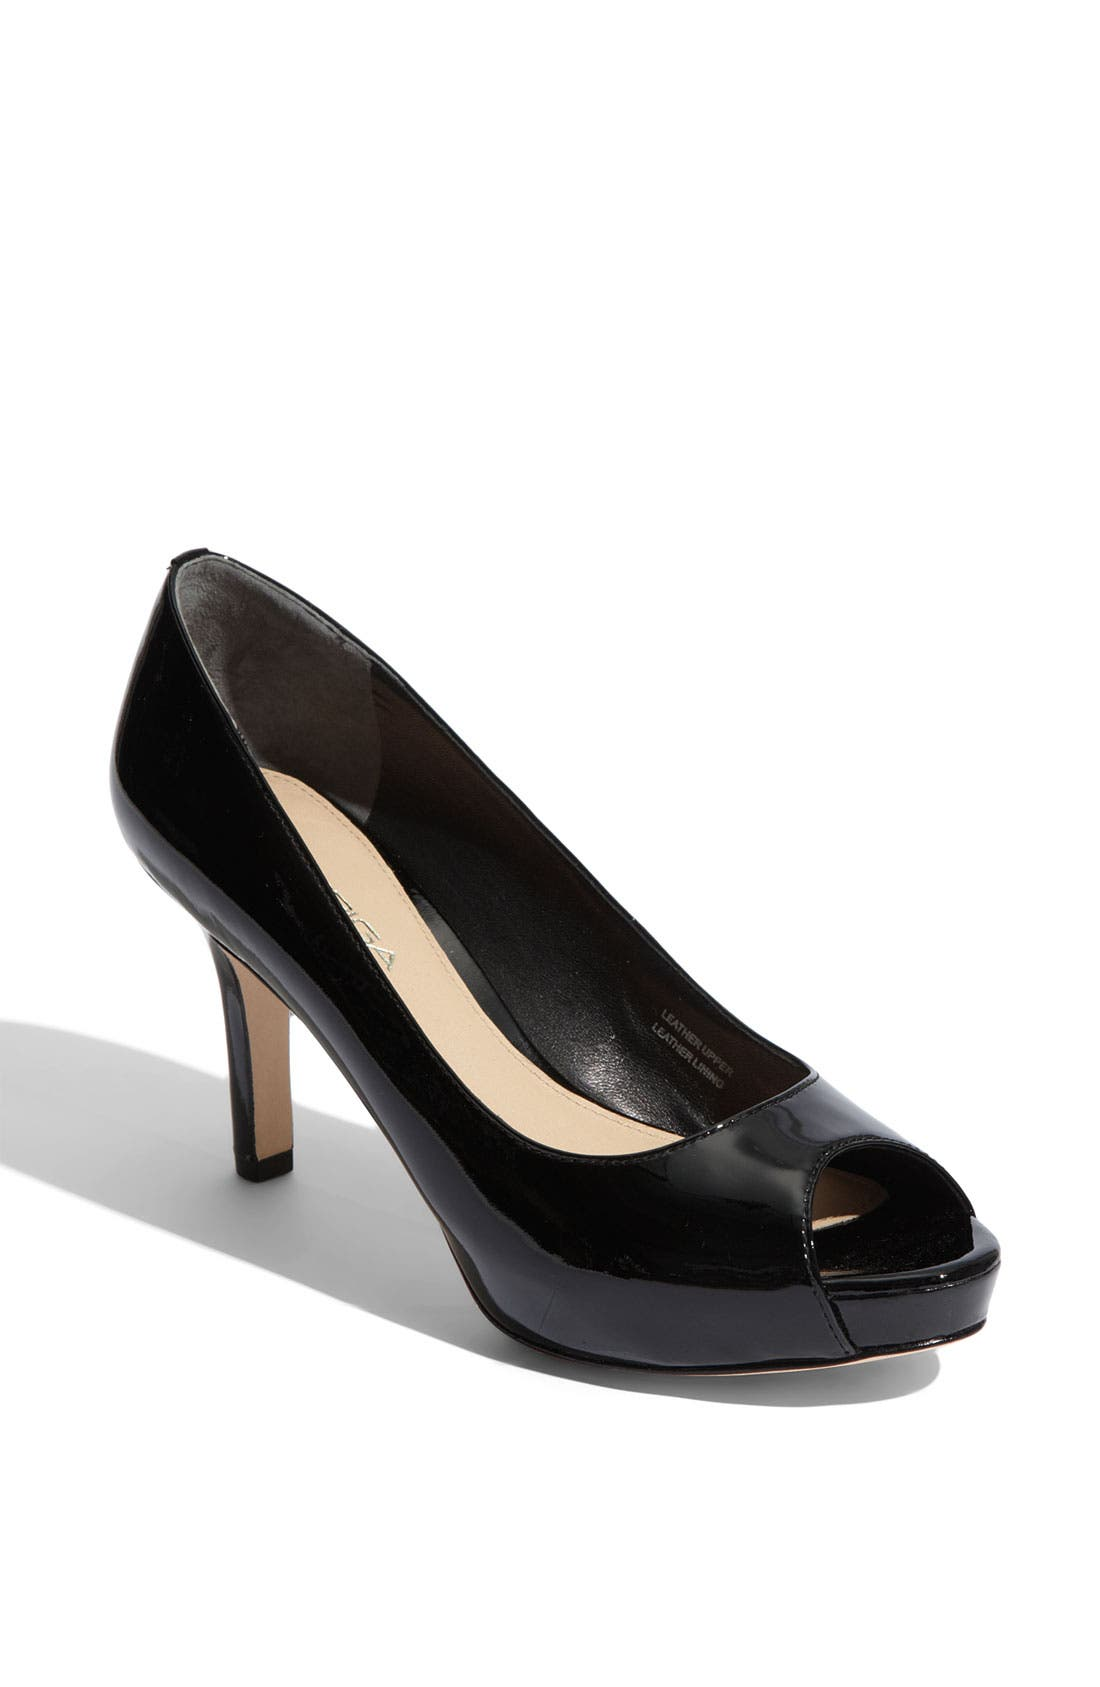 Alternate Image 1 Selected - Via Spiga 'Ryan' Pump